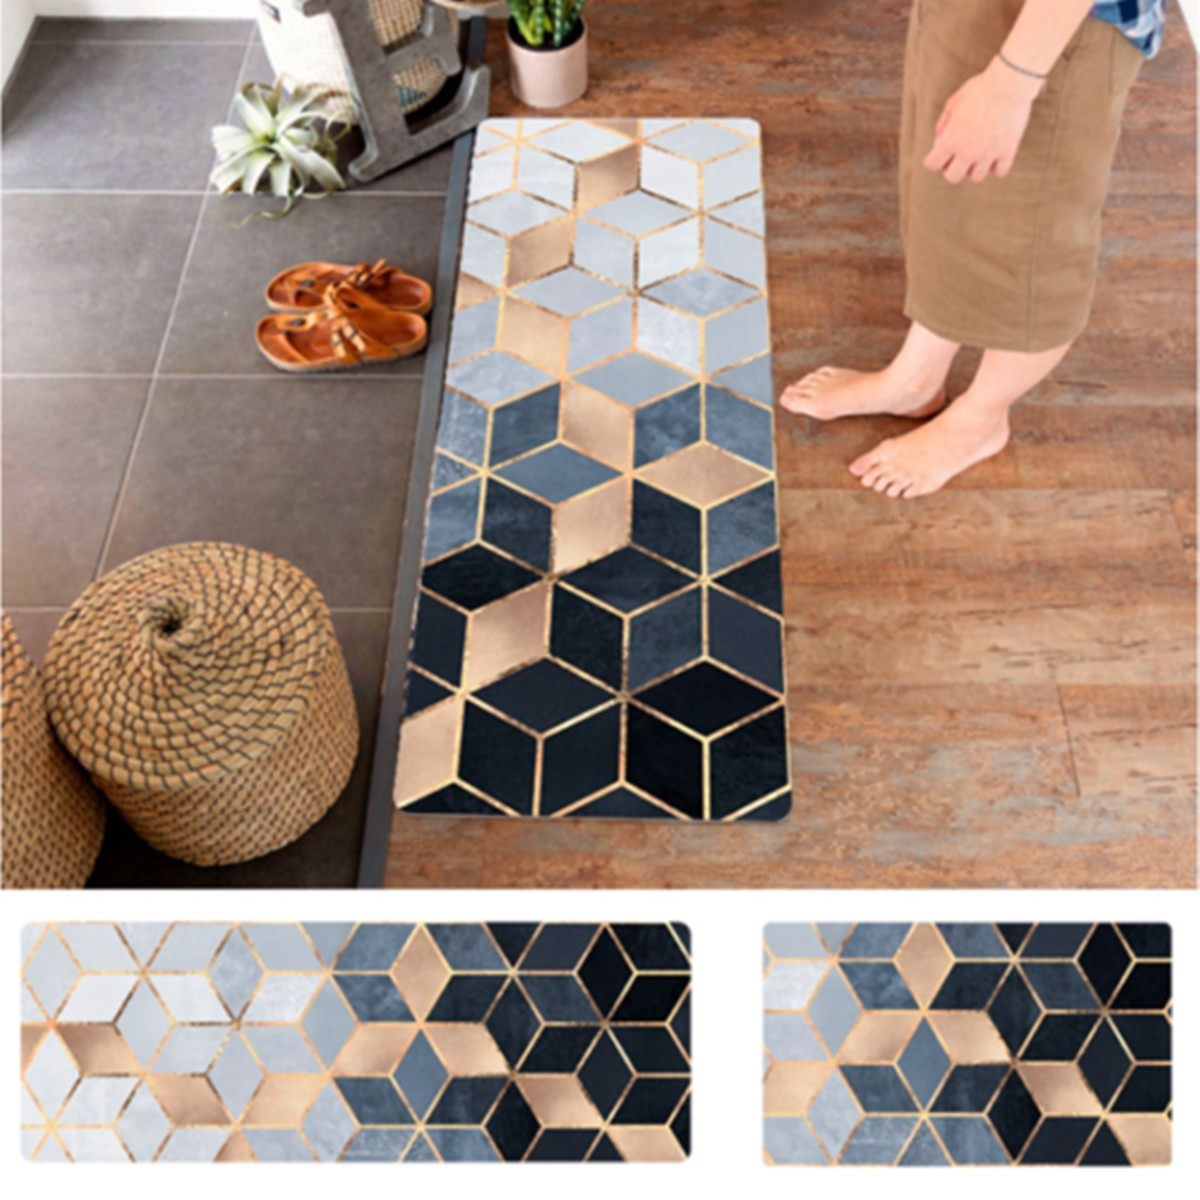 Nordic Geometric Carpets PVC Leather Floor Mats Large Floor Carpets Doormats Bedroom Tatami Waterproof Oilproof Kitchen Rugs